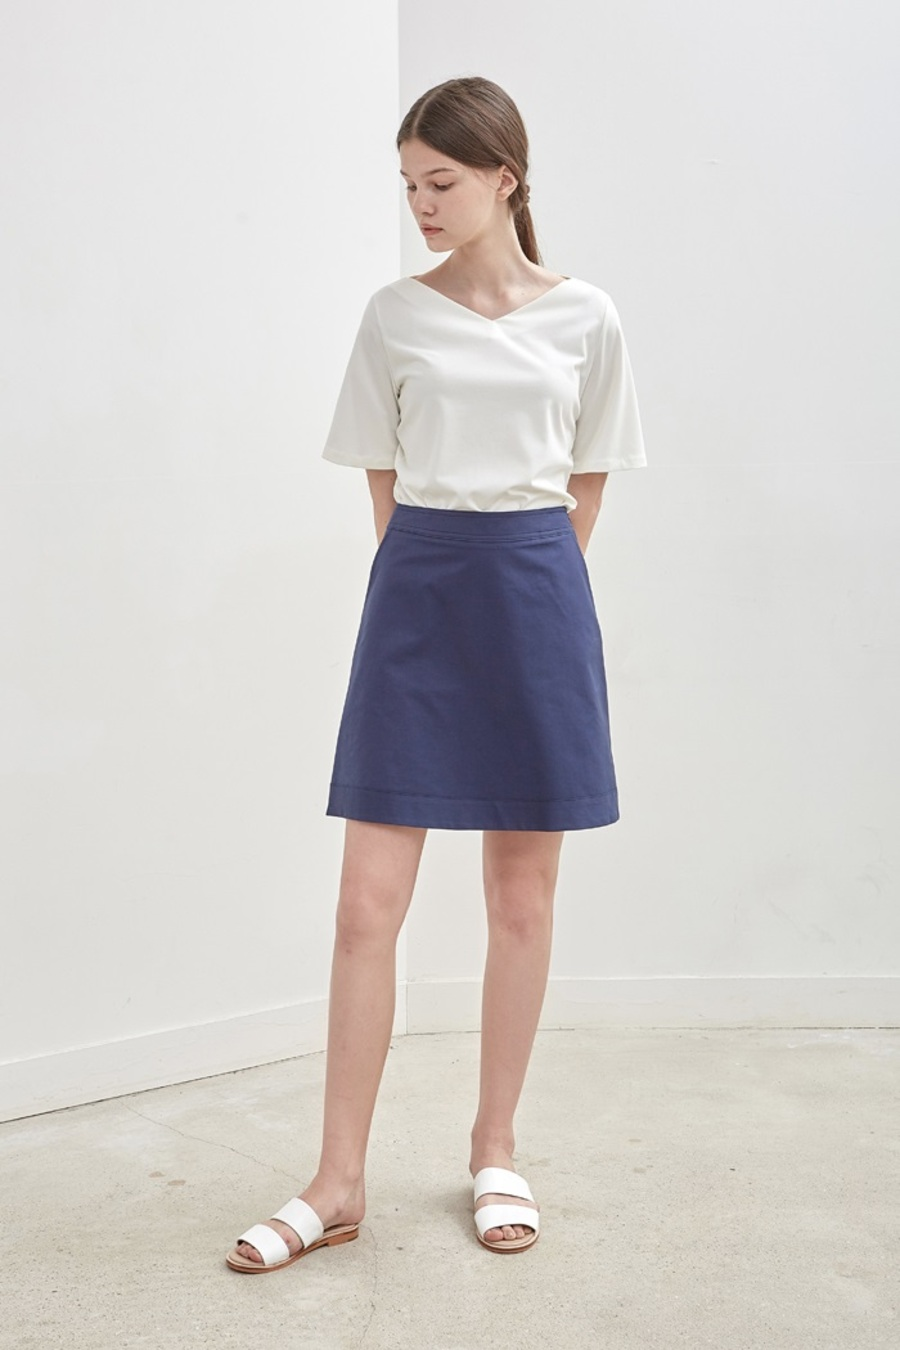 A-LINE POCKET SKIRT - NAVY